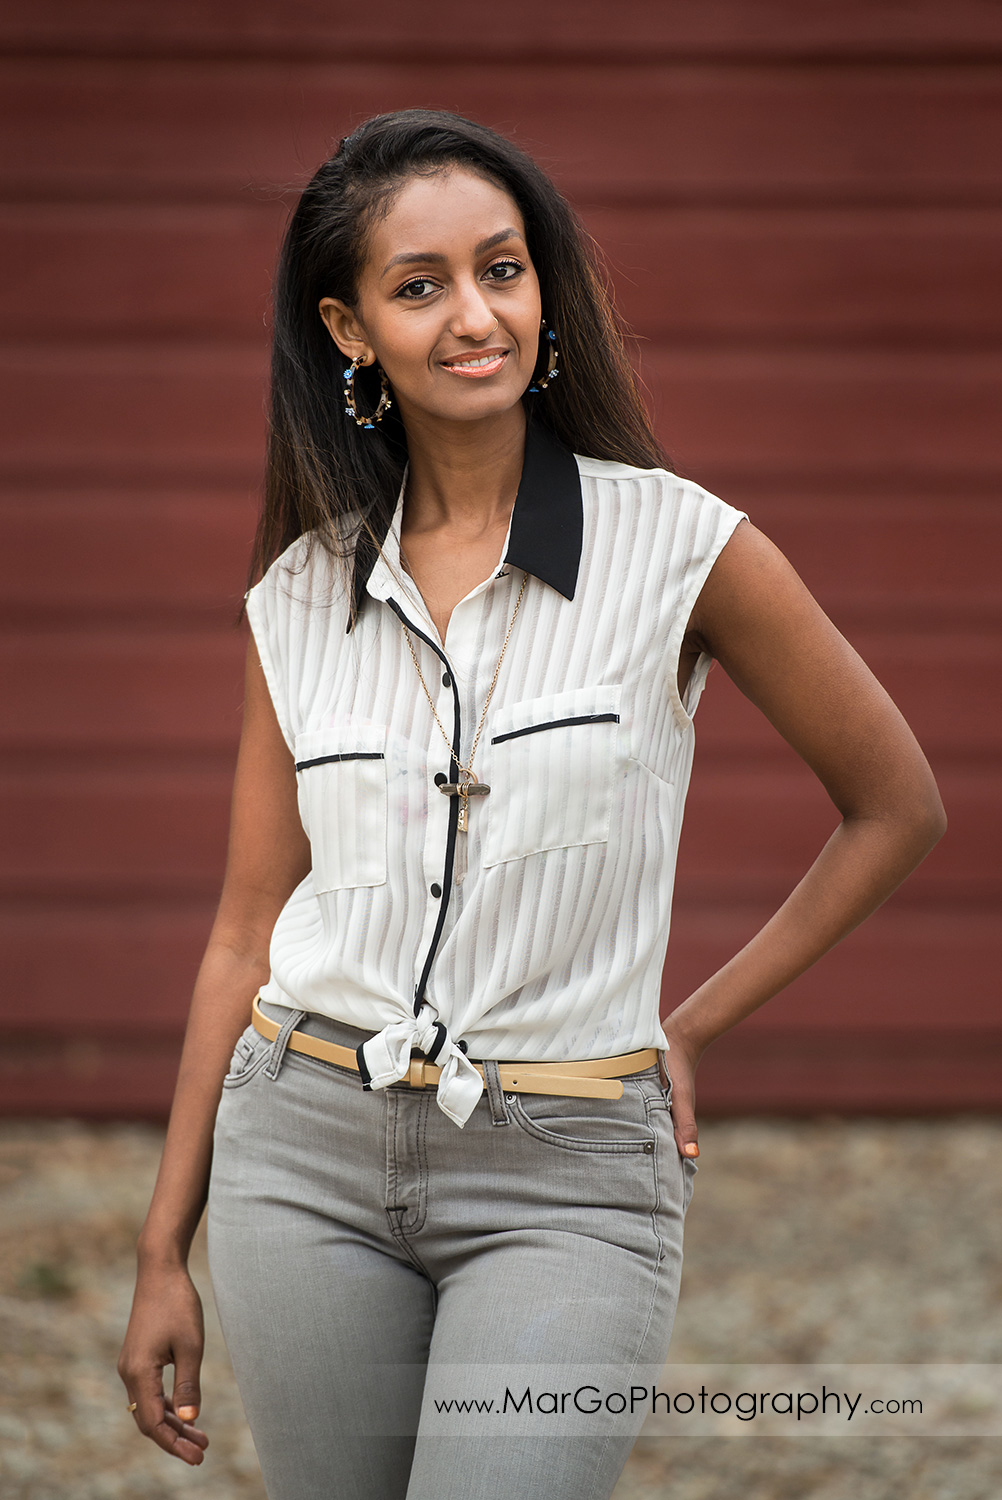 3/4 pose portrait of woman in white shirt and gray jeans standing in front of the red wooden barn in Shinn Historical Park and Arboretum in Fremont